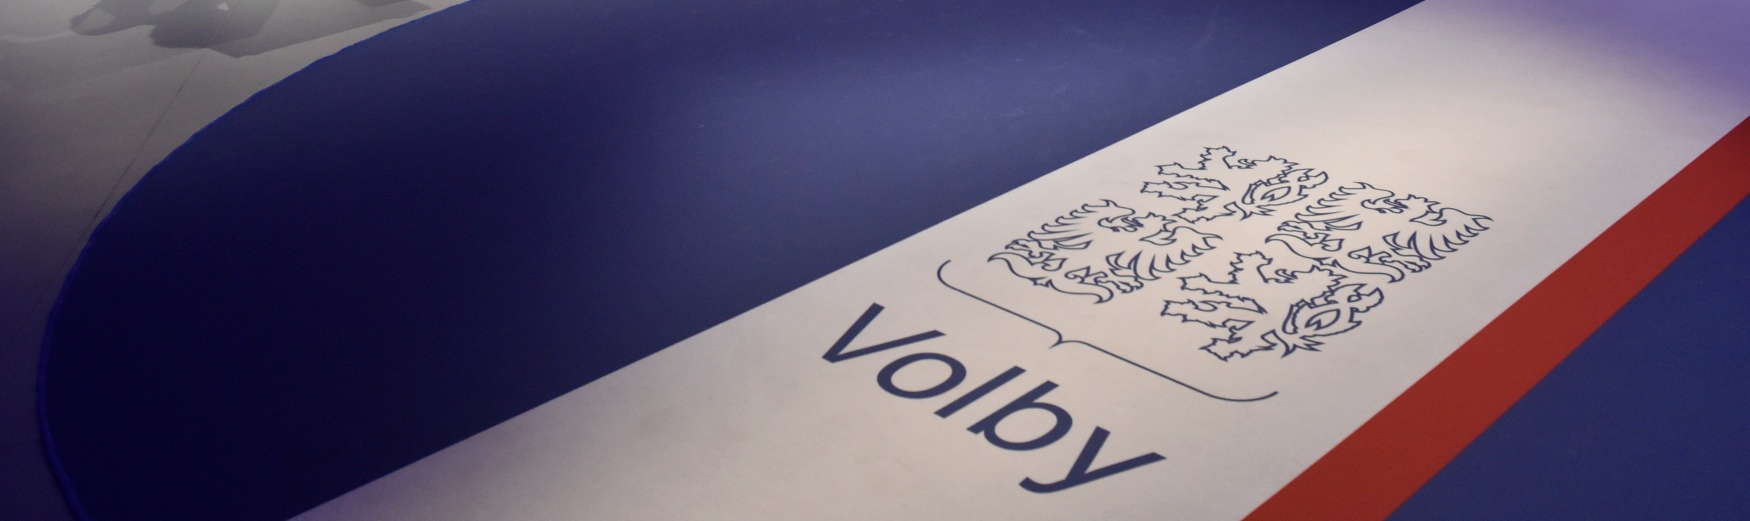 Volby 2016 (banner)